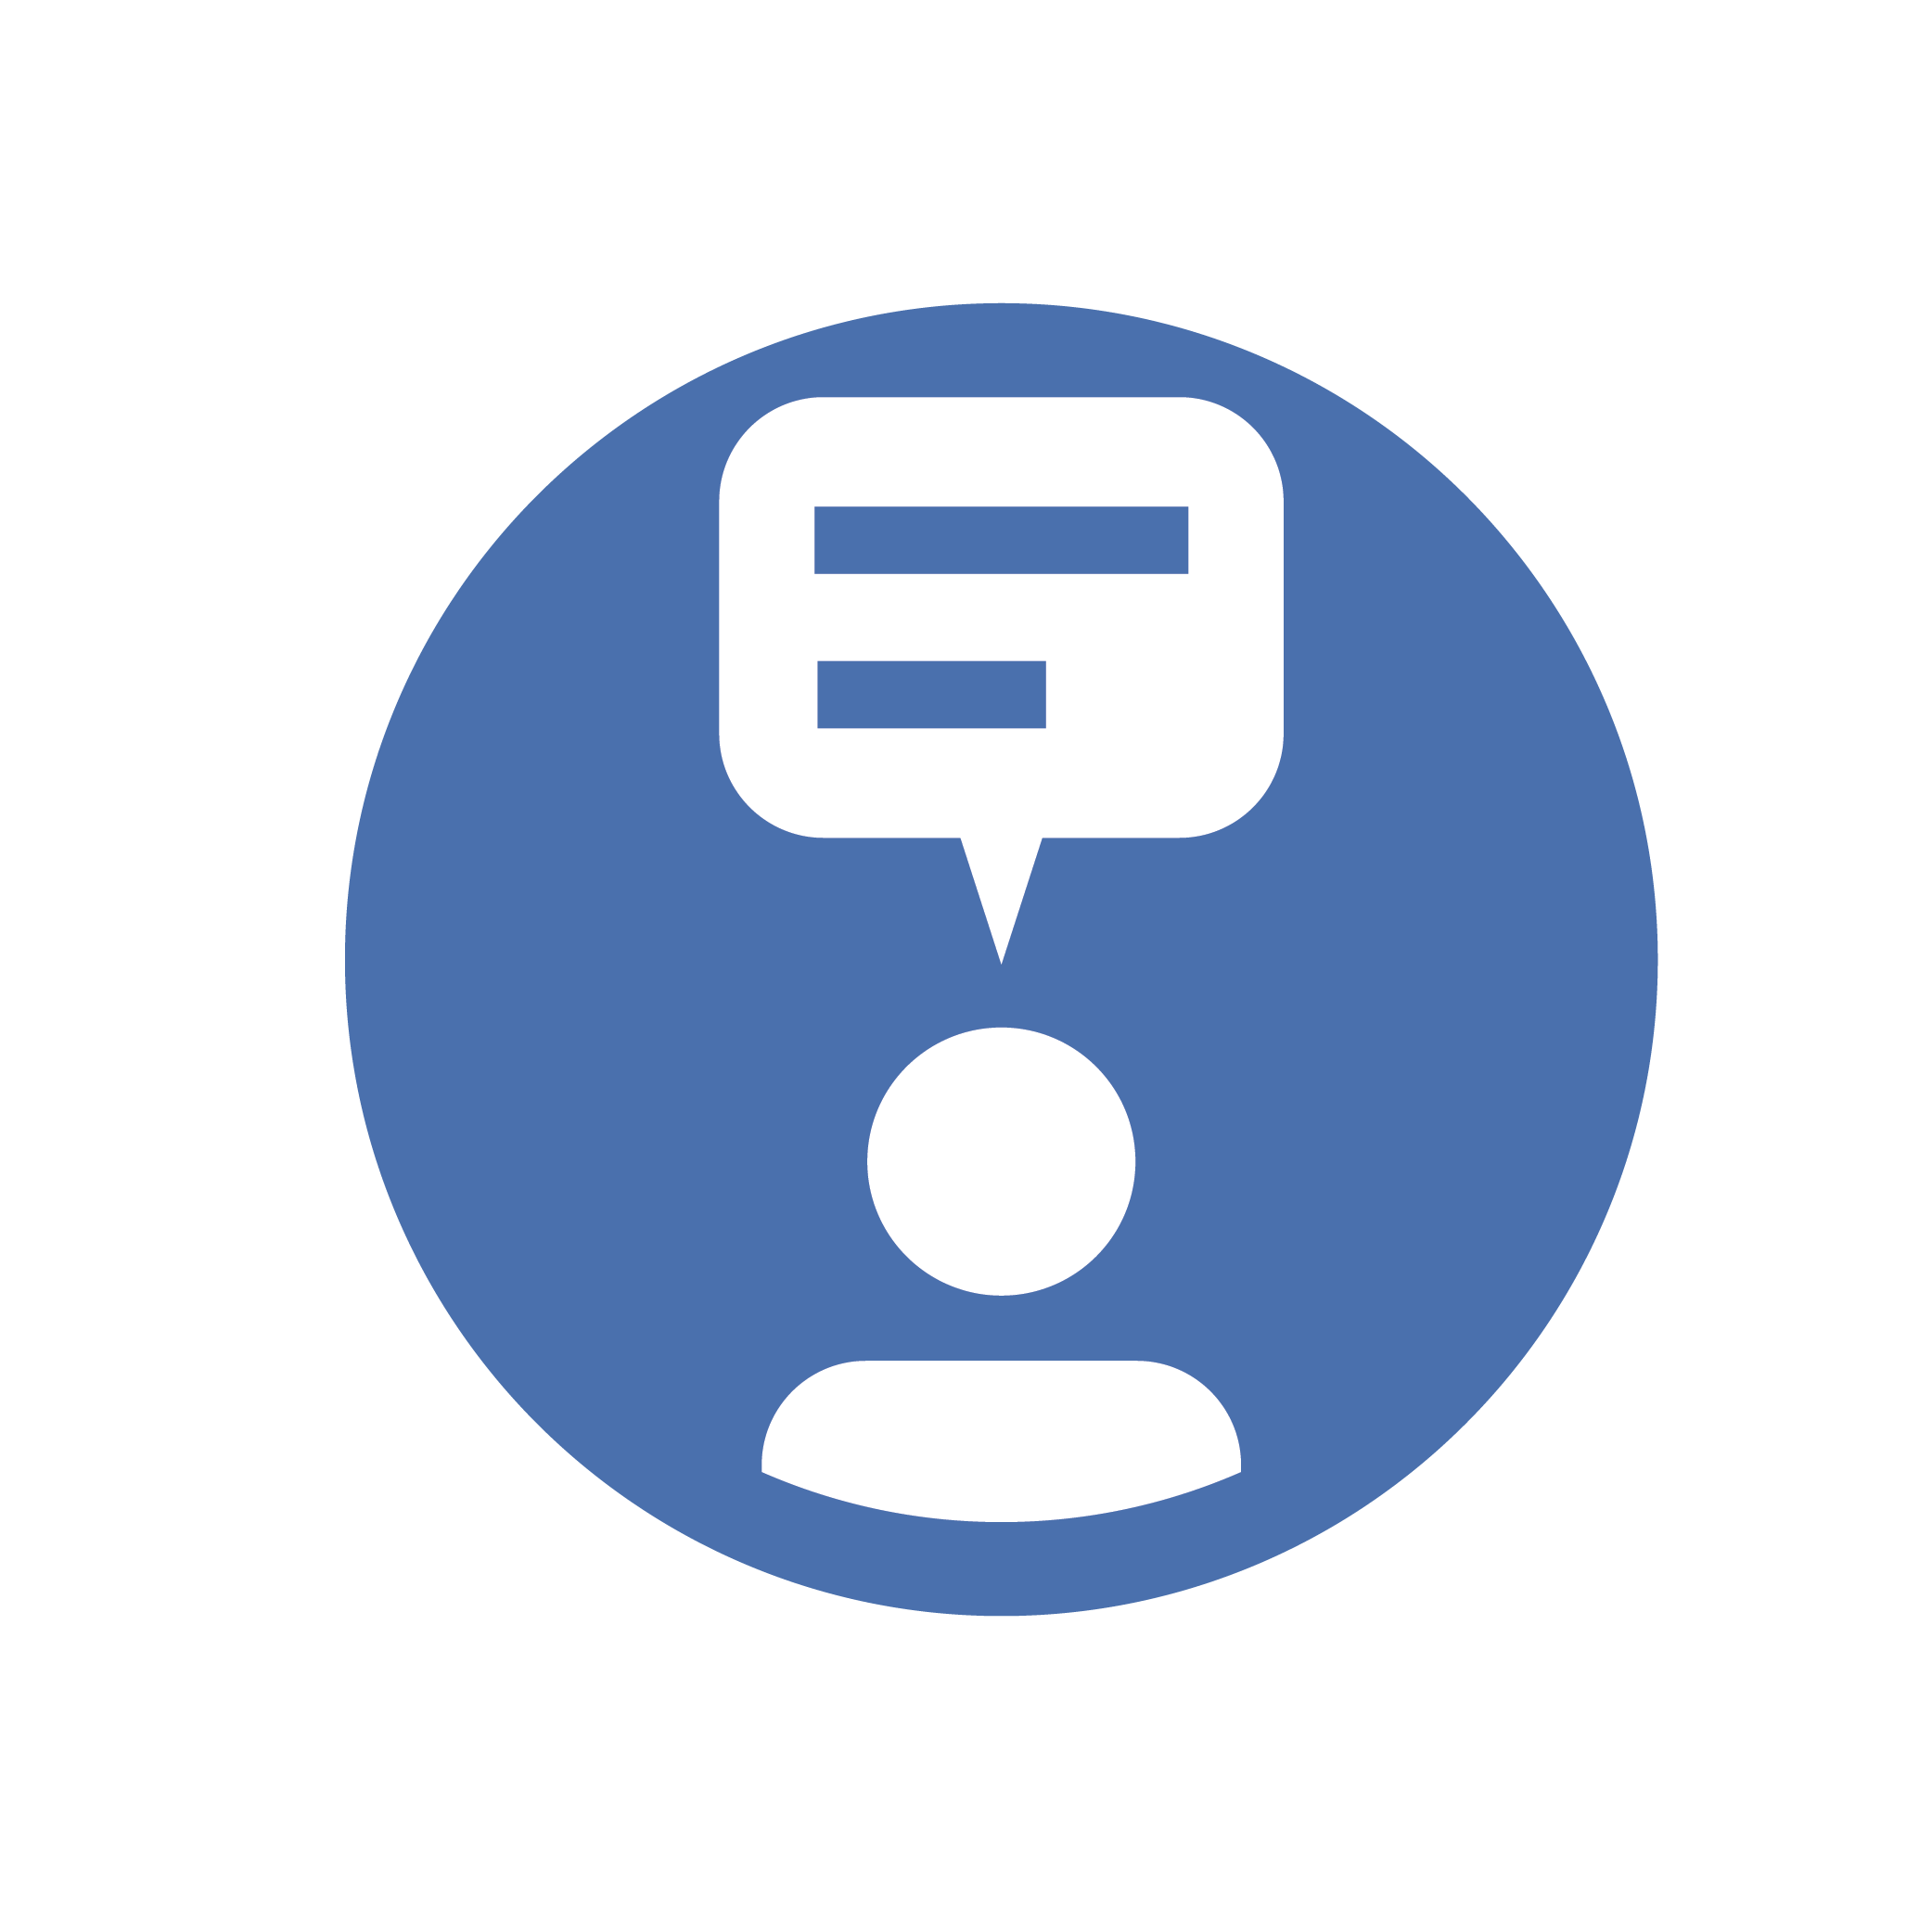 INTERVIEW VIDEOS   Tell customers face-to-face why your company's different,why your product is superior. You have the chance to deliver the perfect pitch again and again.